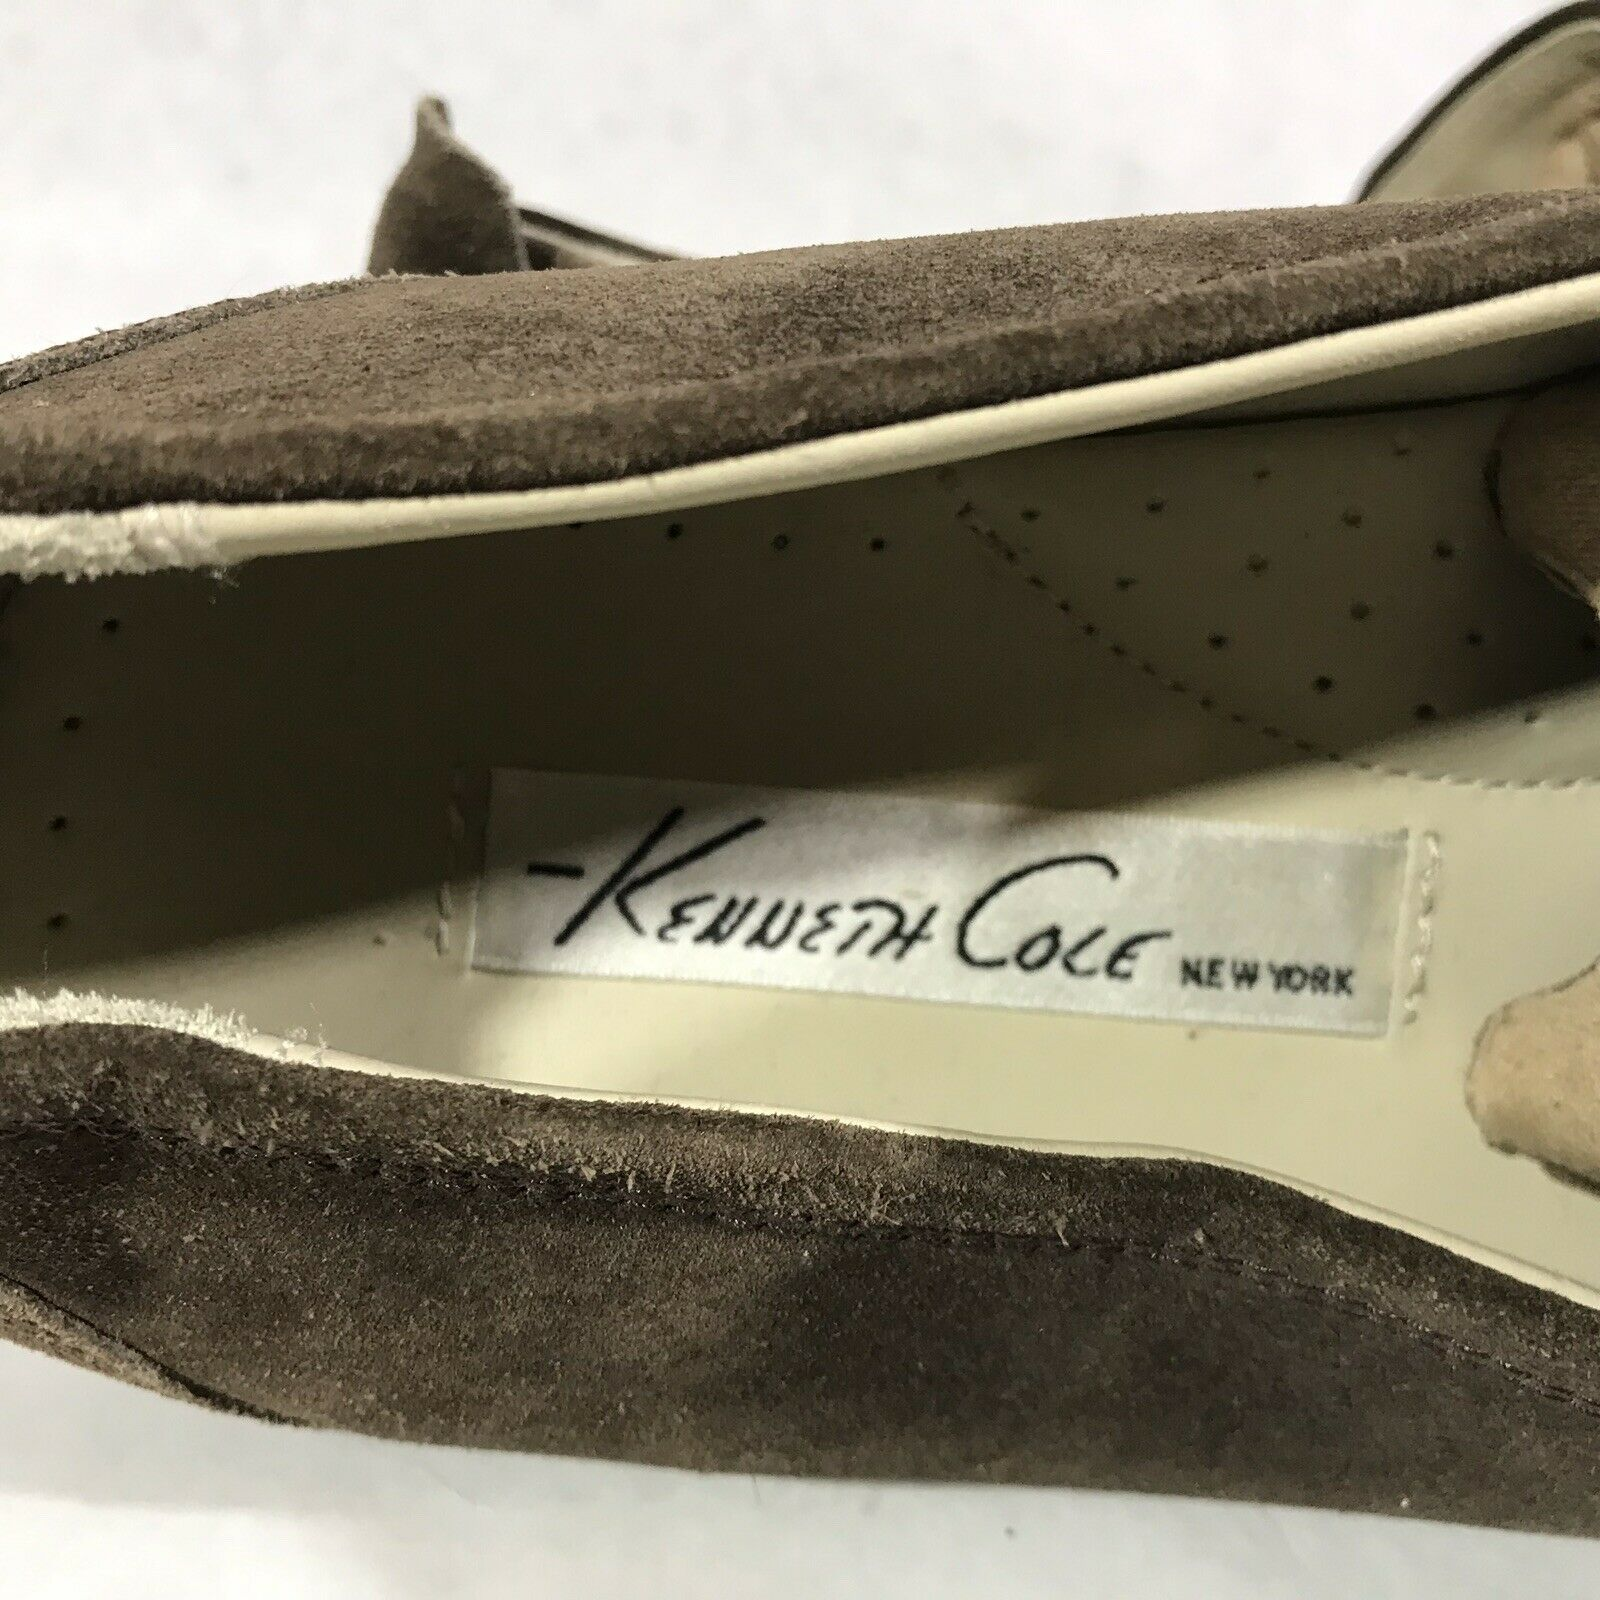 Kenneth Cole Turbo Jet 9.5 Leather Loafers - image 4